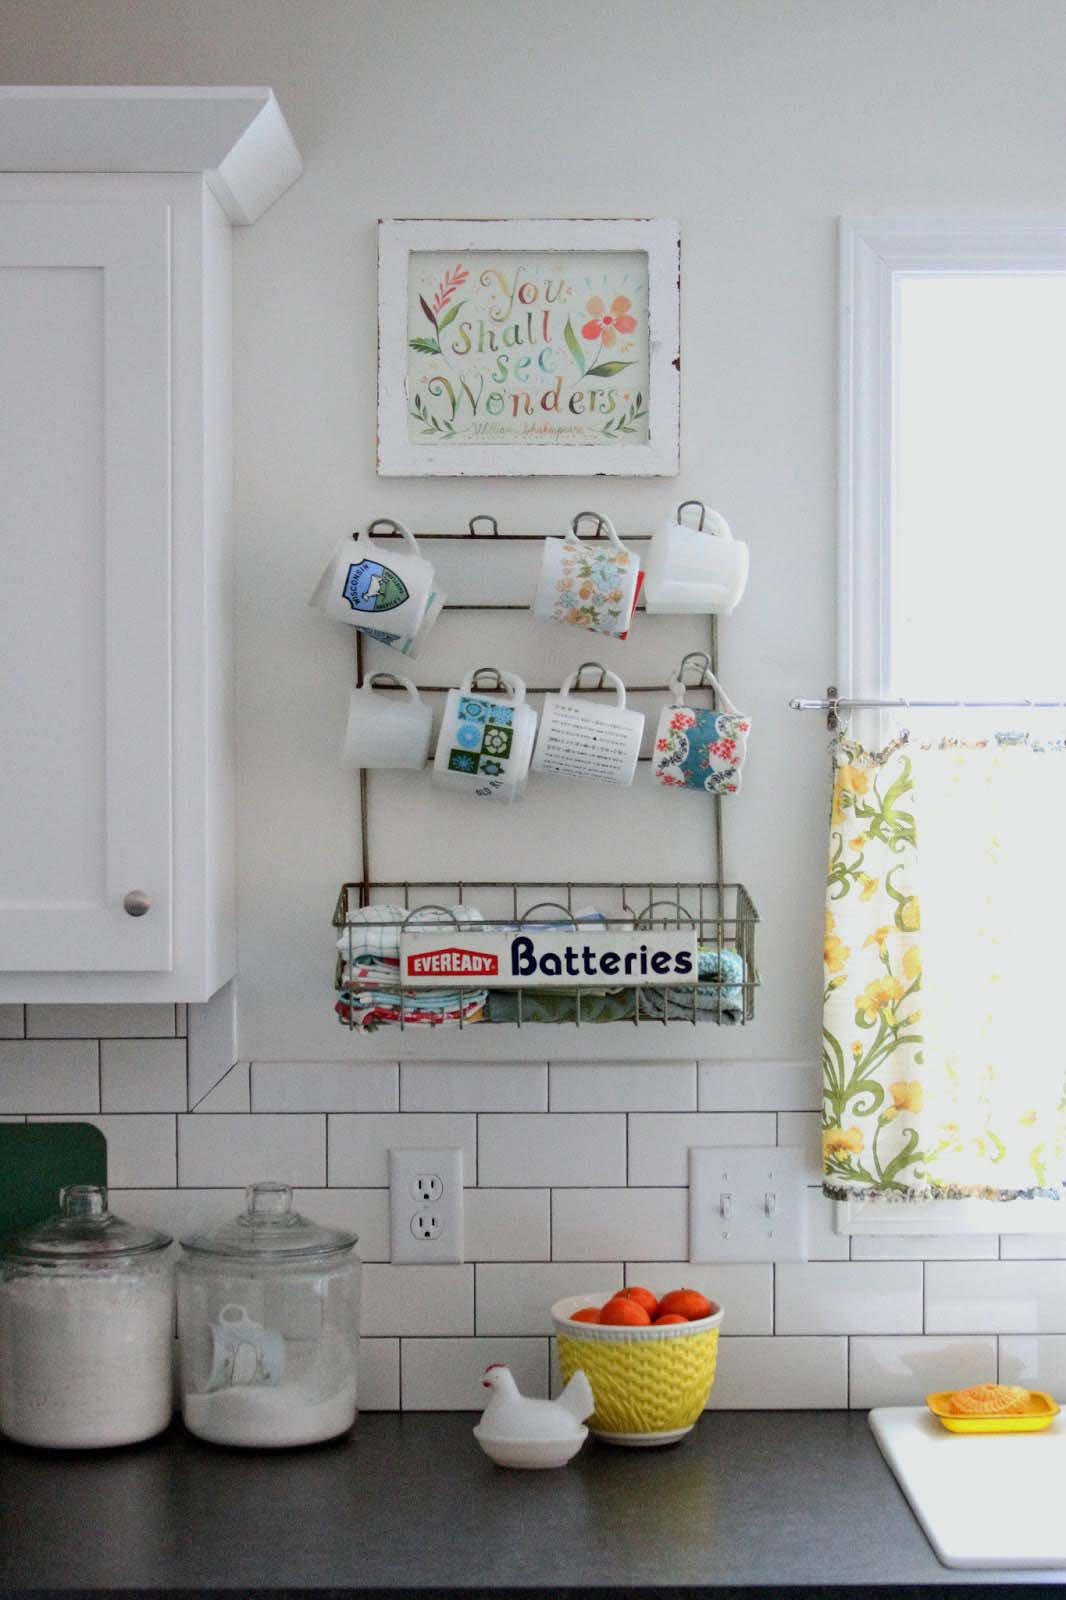 Cocina shabby chic 3 for Cocinas shabby chic